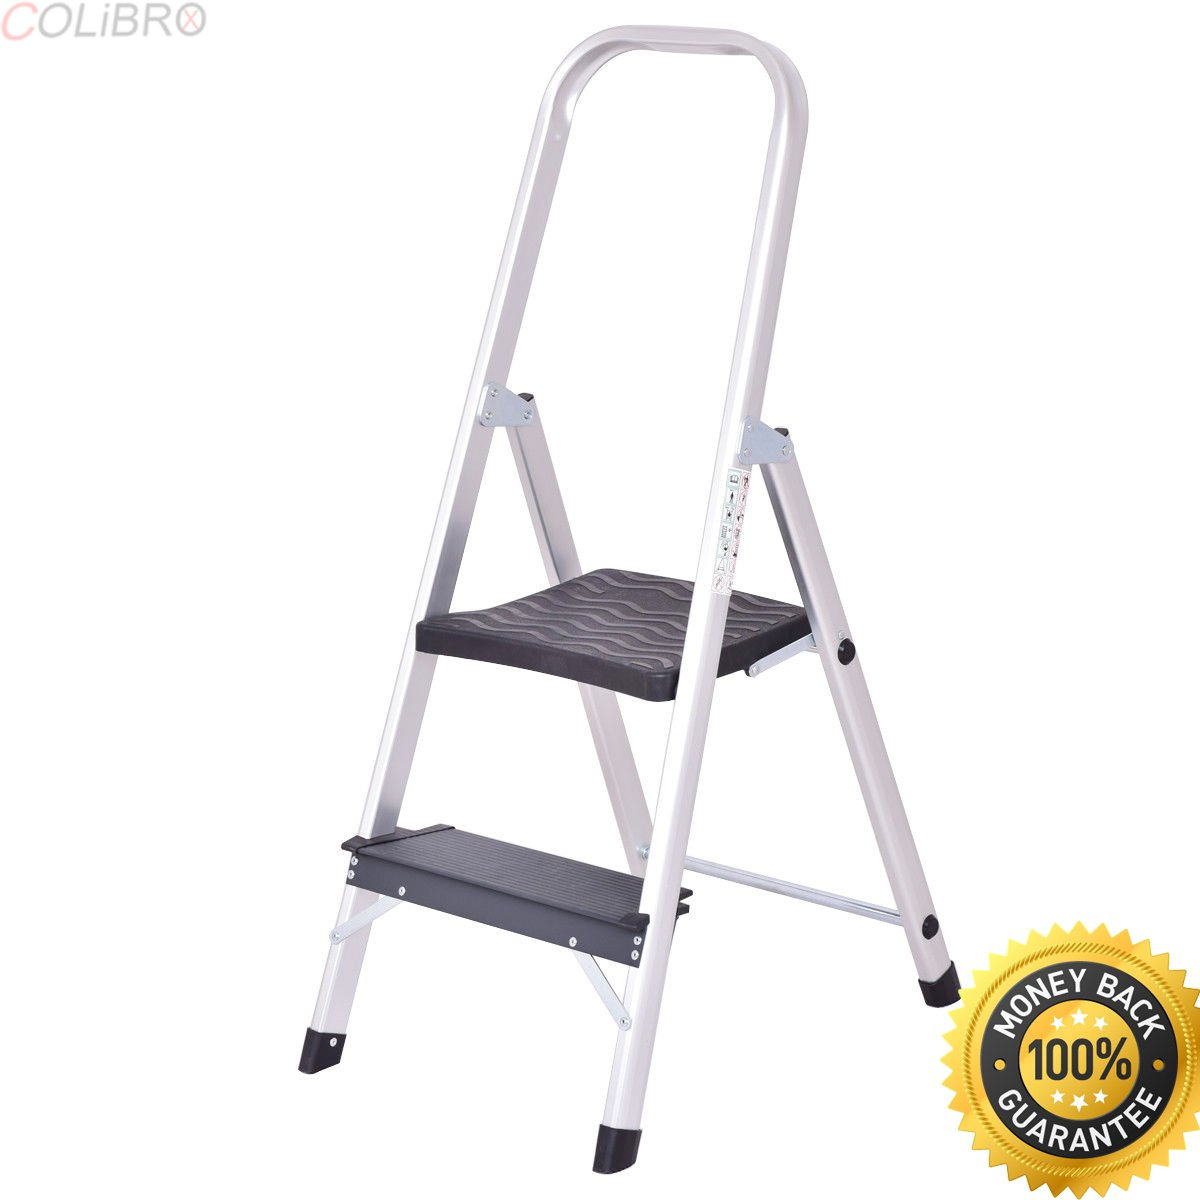 COLIBROX--2 Step Aluminum Ladder Folding Non-Slip Work Platform Stool 330Lbs Load Capacity. easyreach by gorilla ladders plastic 2-step project stool. aluminum 2 step stool. lowes 2 step ladder.